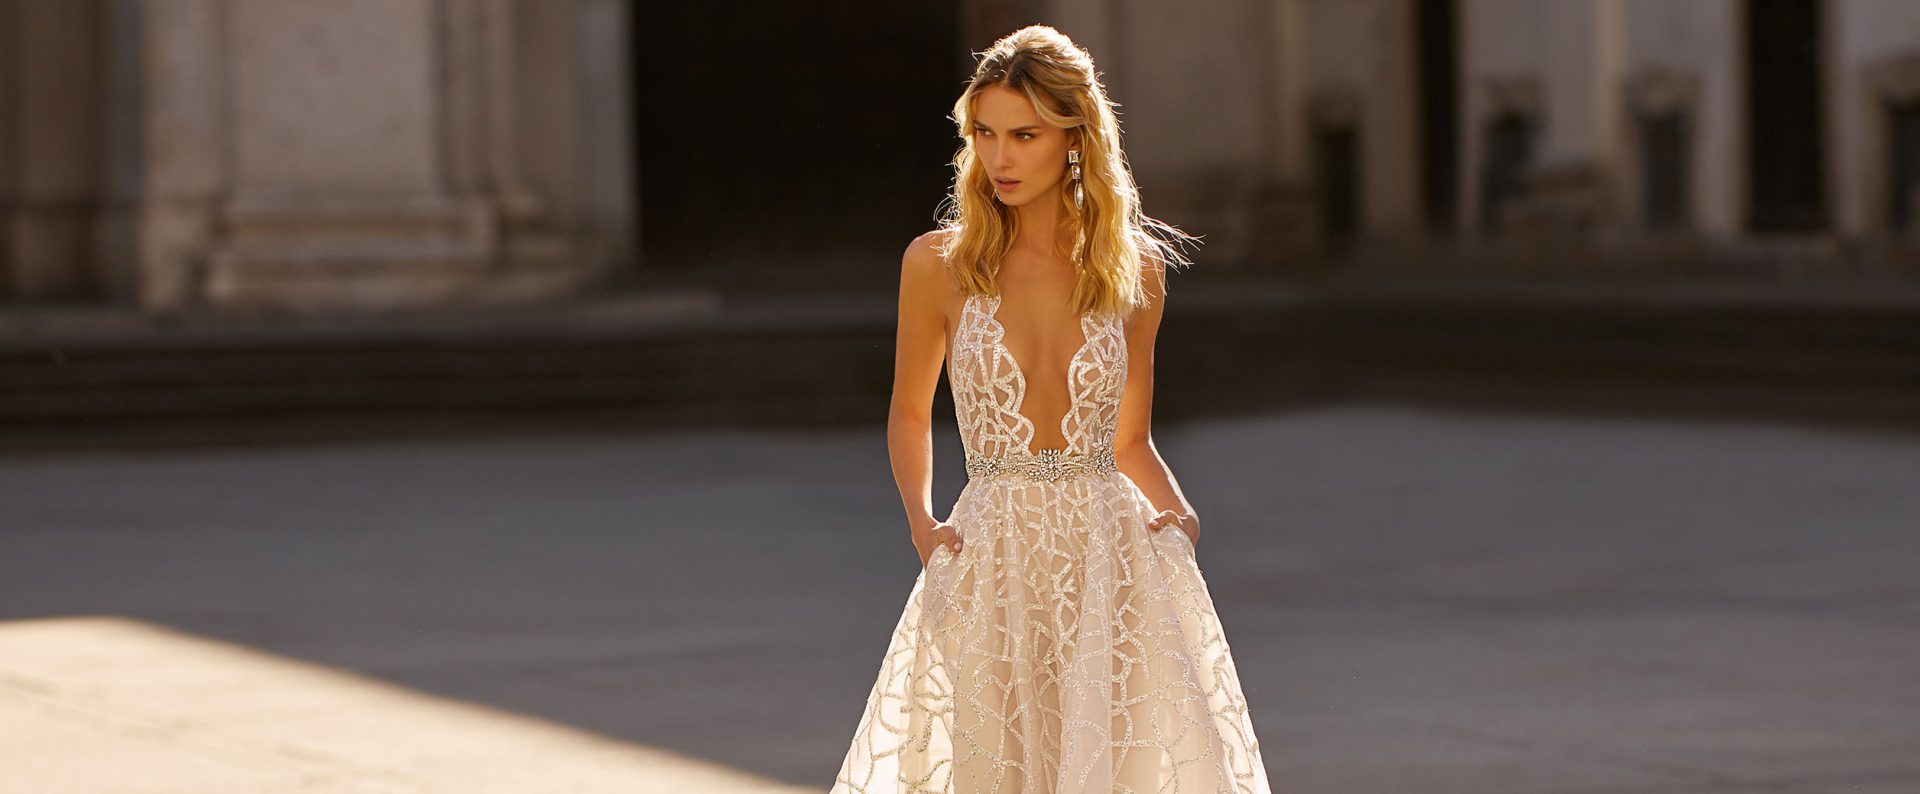 berta wedding dress paris